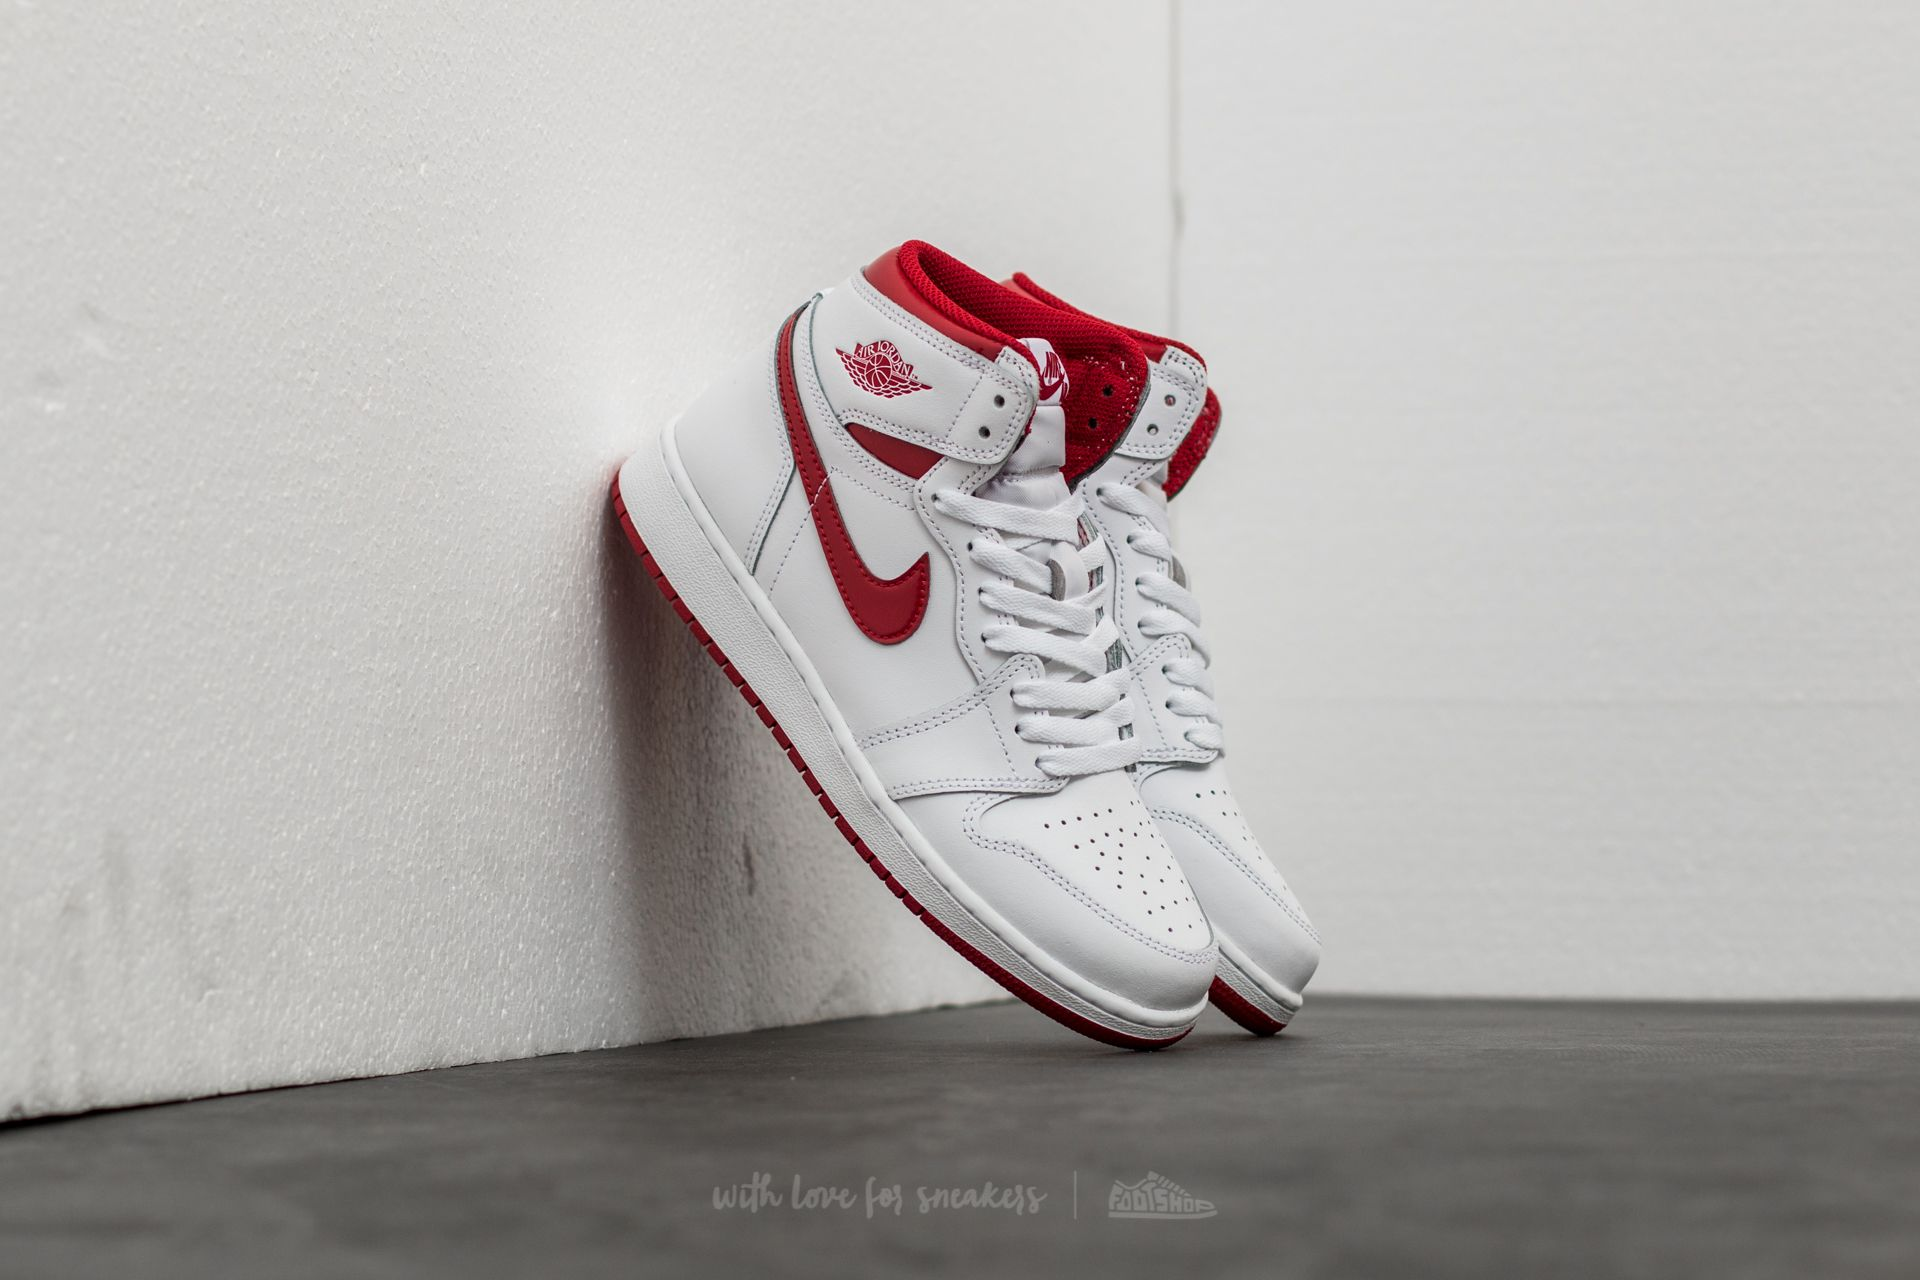 Air Jordan 1 Retro High OG BG 'Metallic Red' White/ Varsity Red